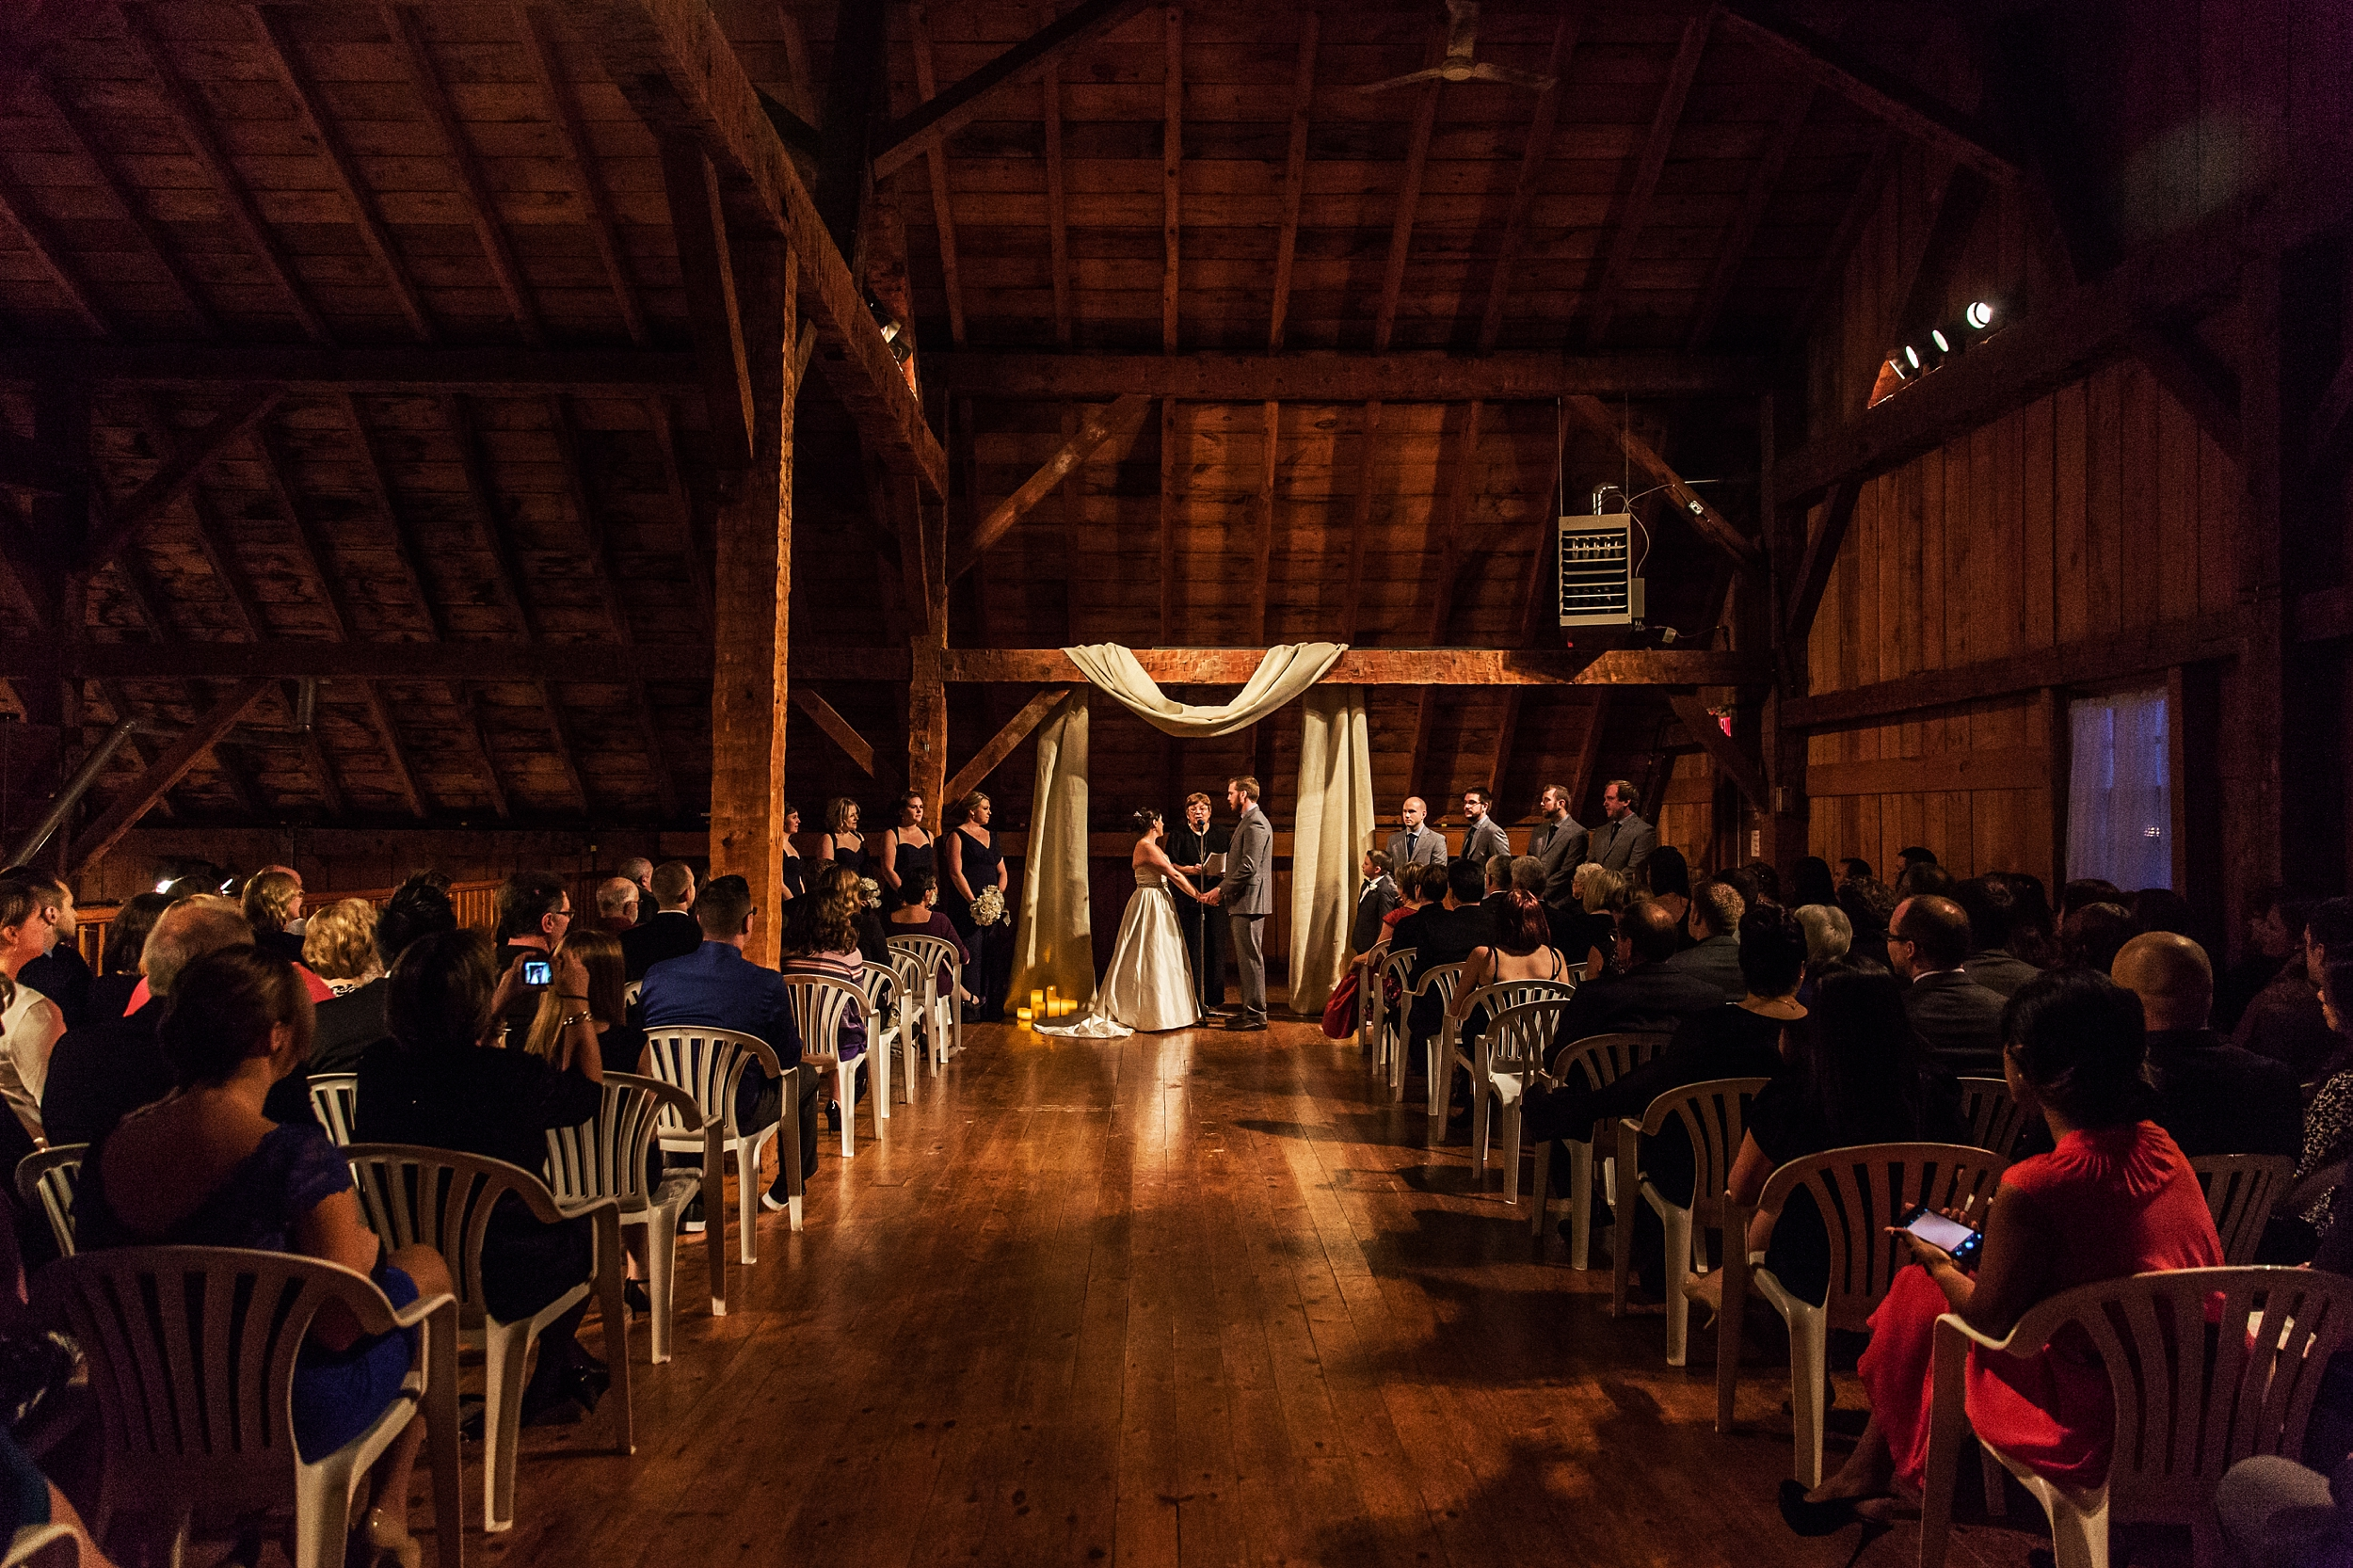 countryheritagebarn-wedding_0076.jpg